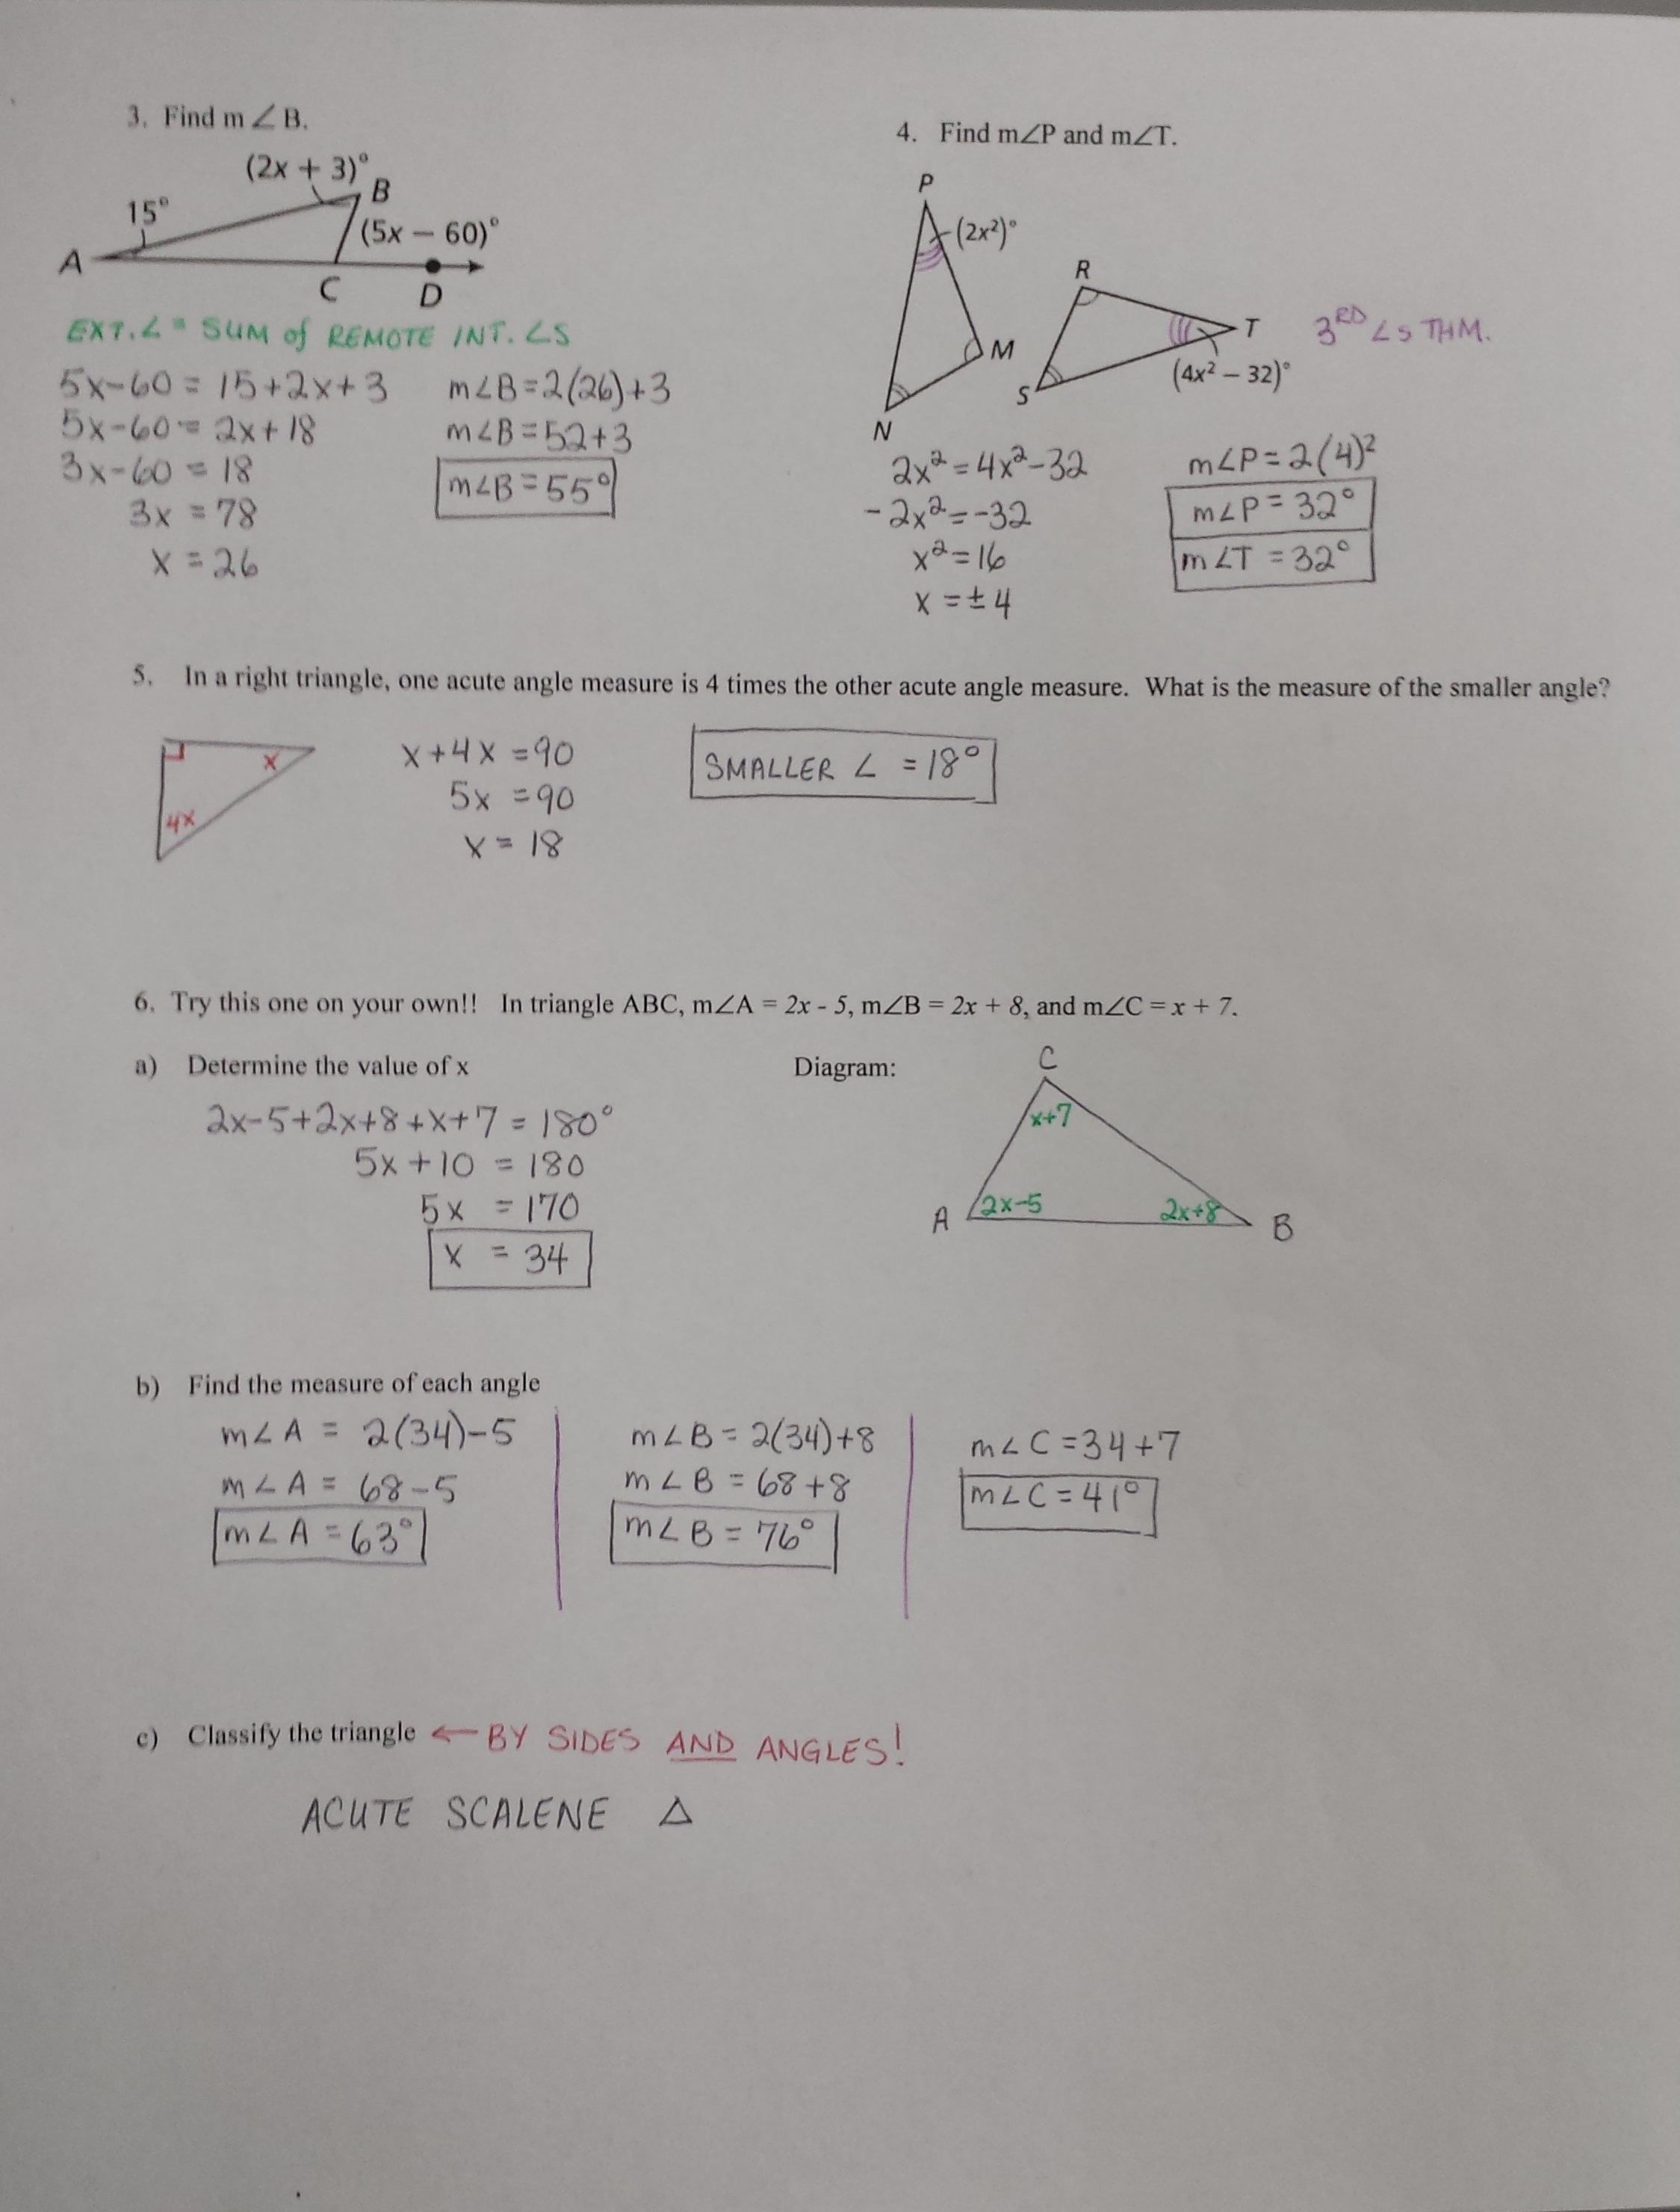 Course 2 Chapter 7 Geometric Figures Lesson 3 Homework